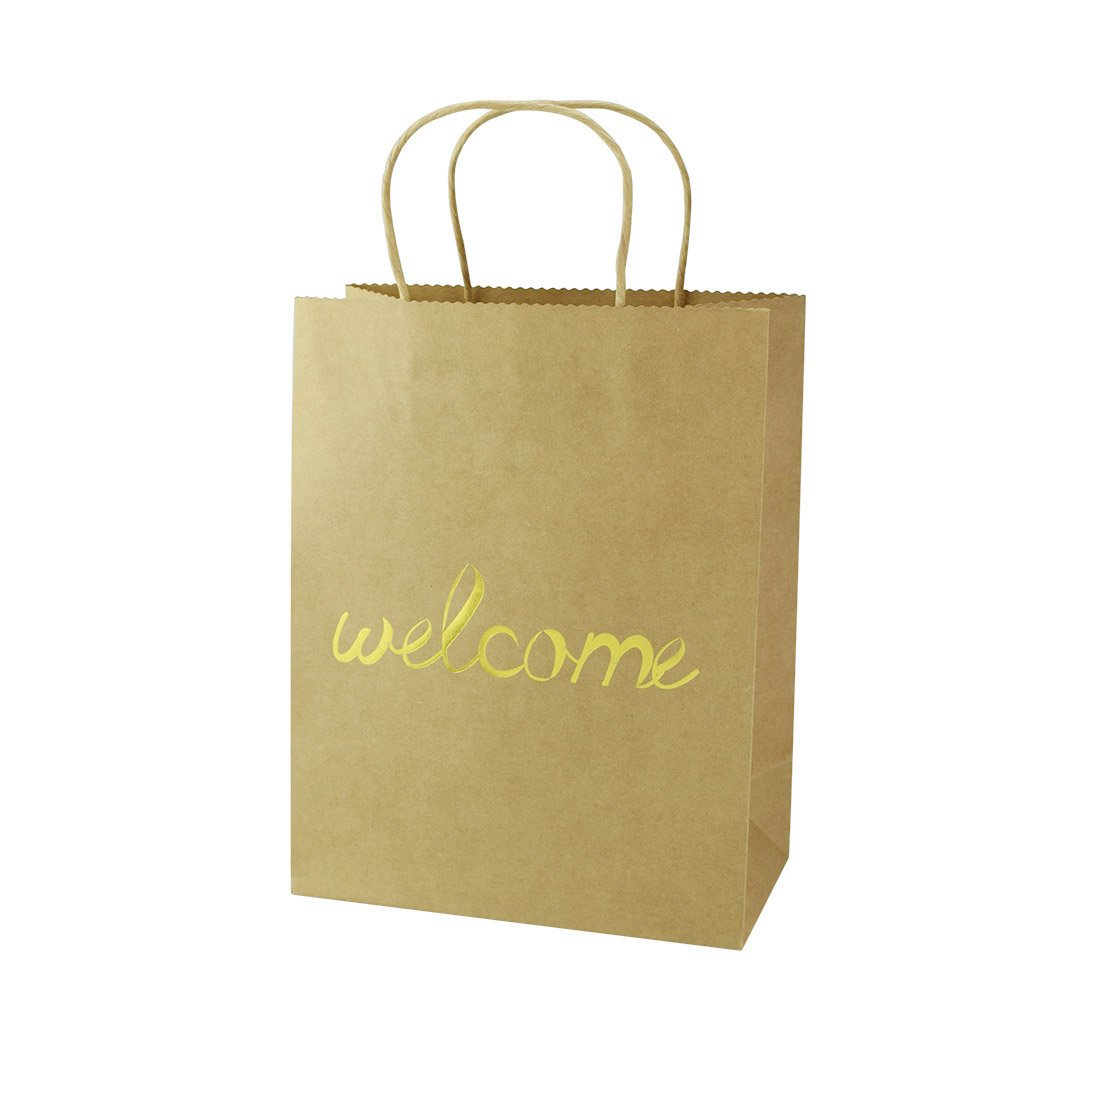 FOONEA Set of 12 Brown Kraft Paper Gold Foil Welcome Gift Bags for Destination Wedding Favors, Wedding Party Hotel Guests